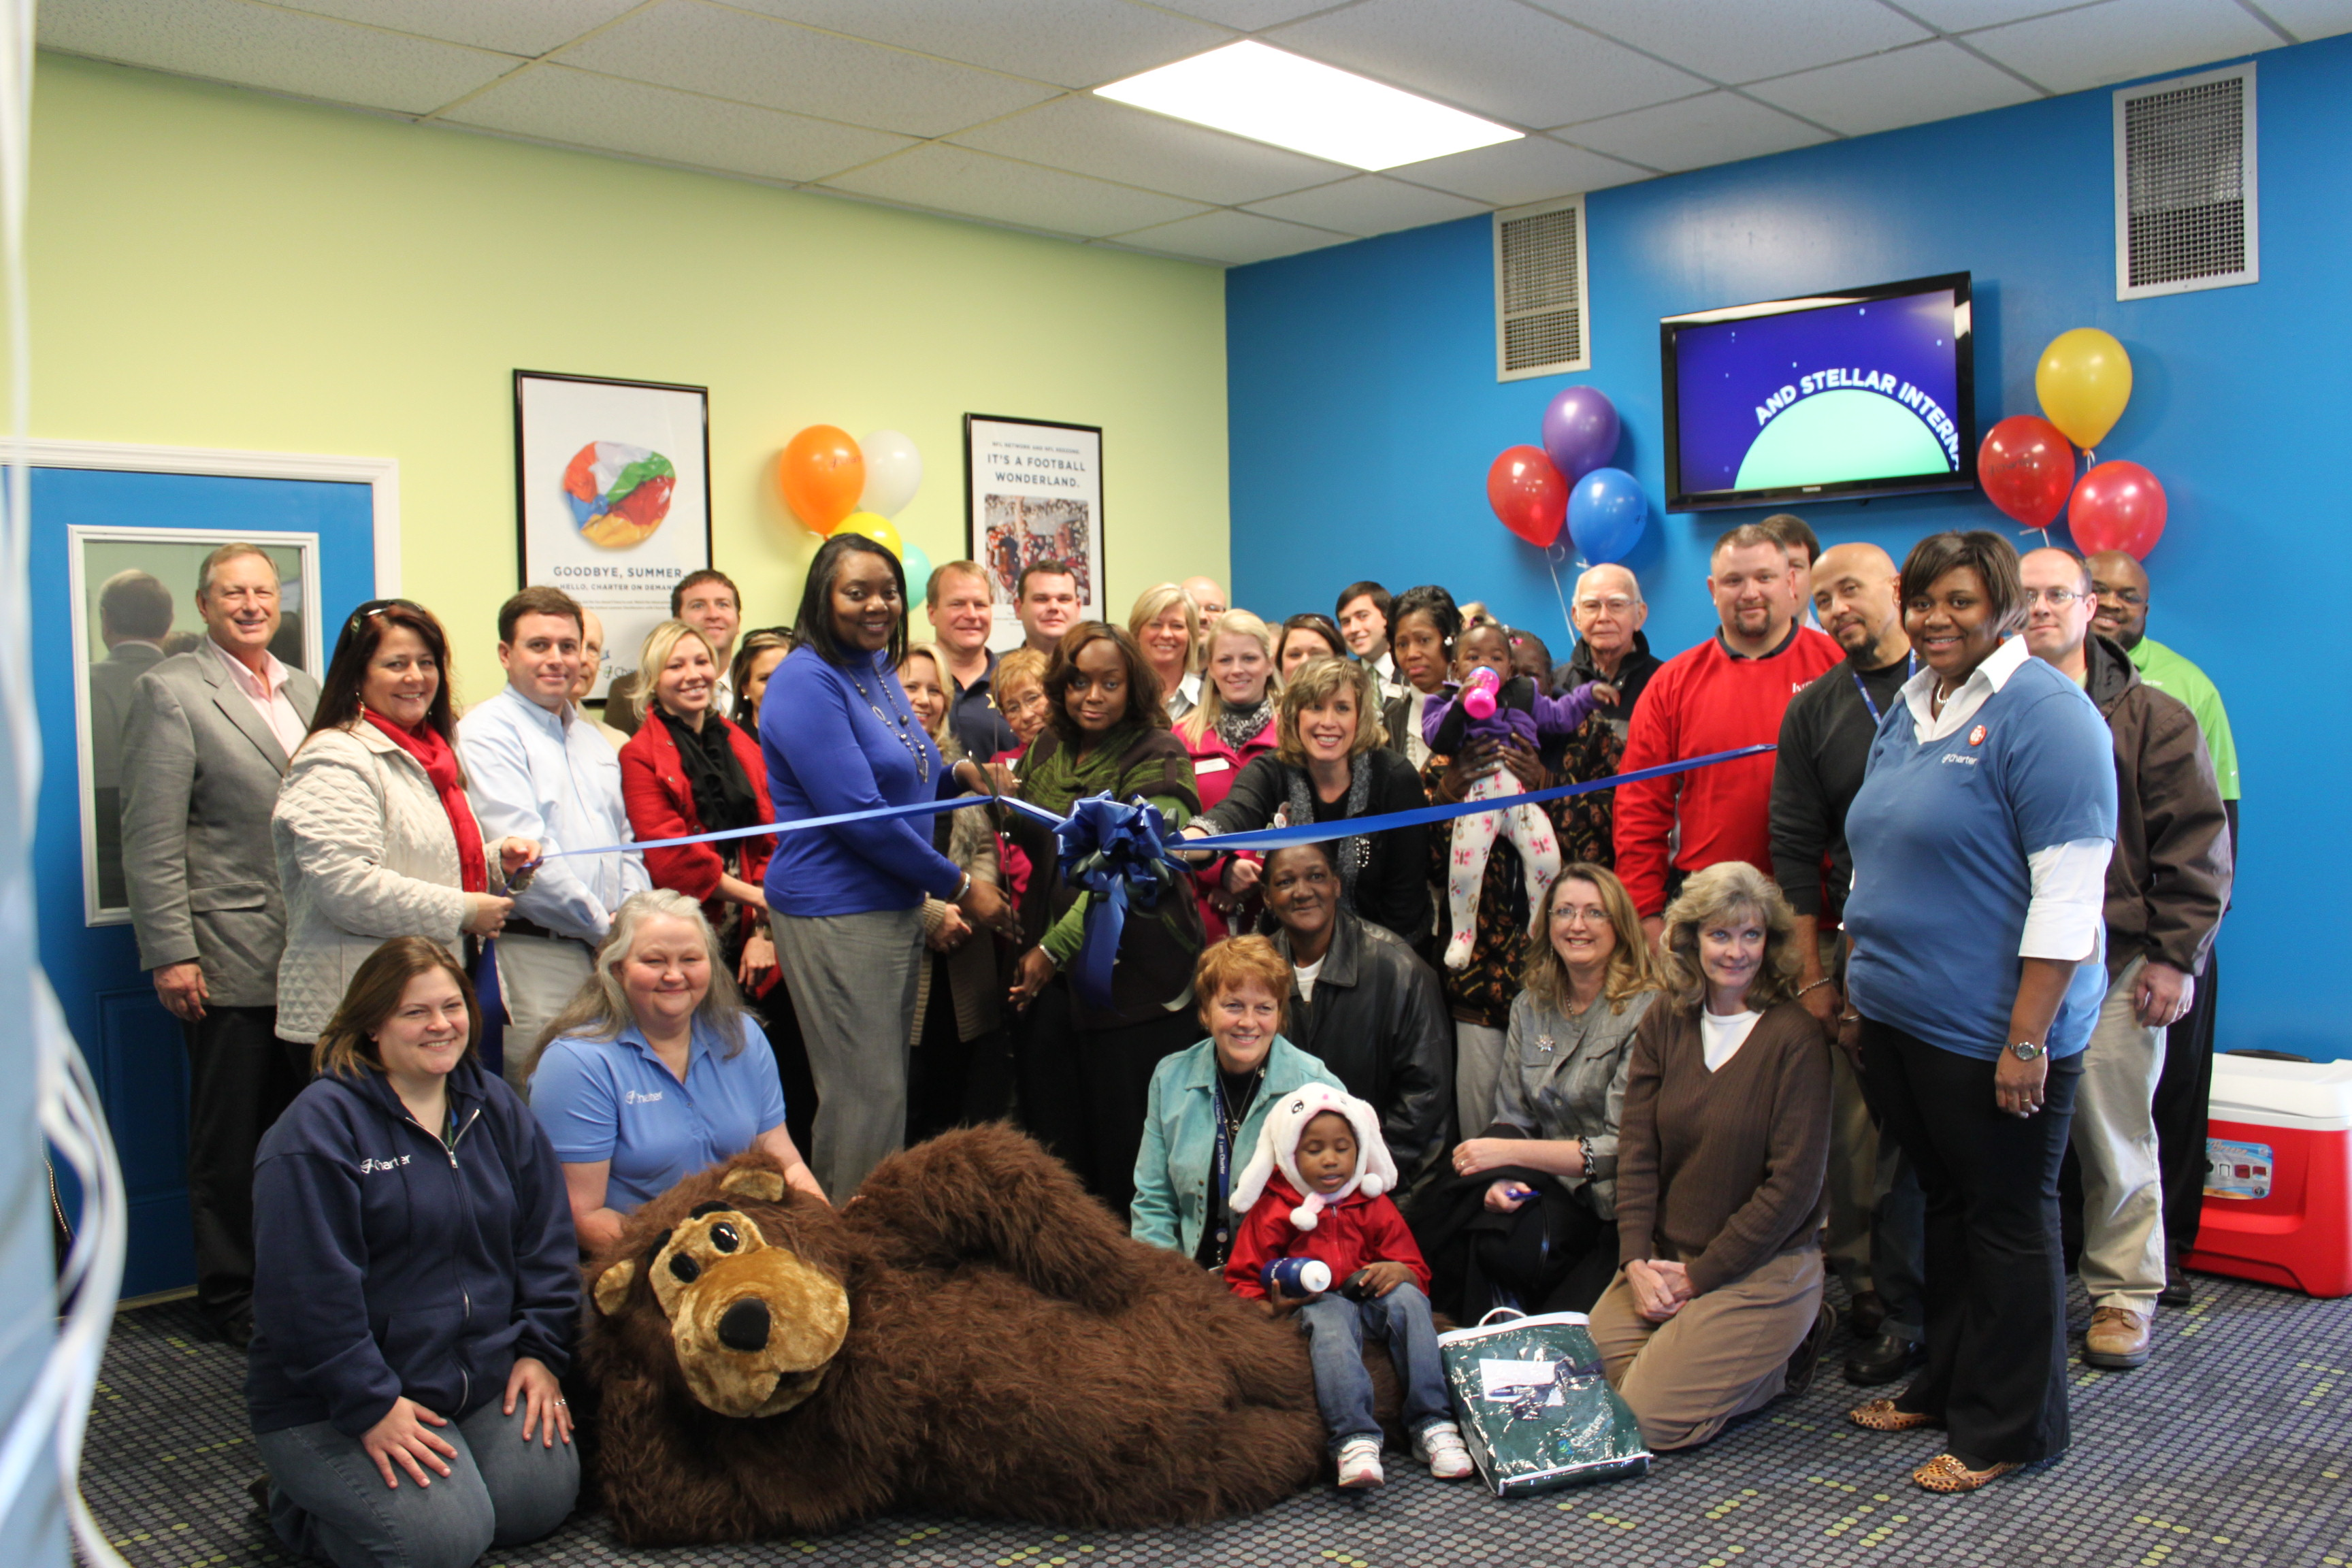 7_Charter_ribbon_cutting.JPG